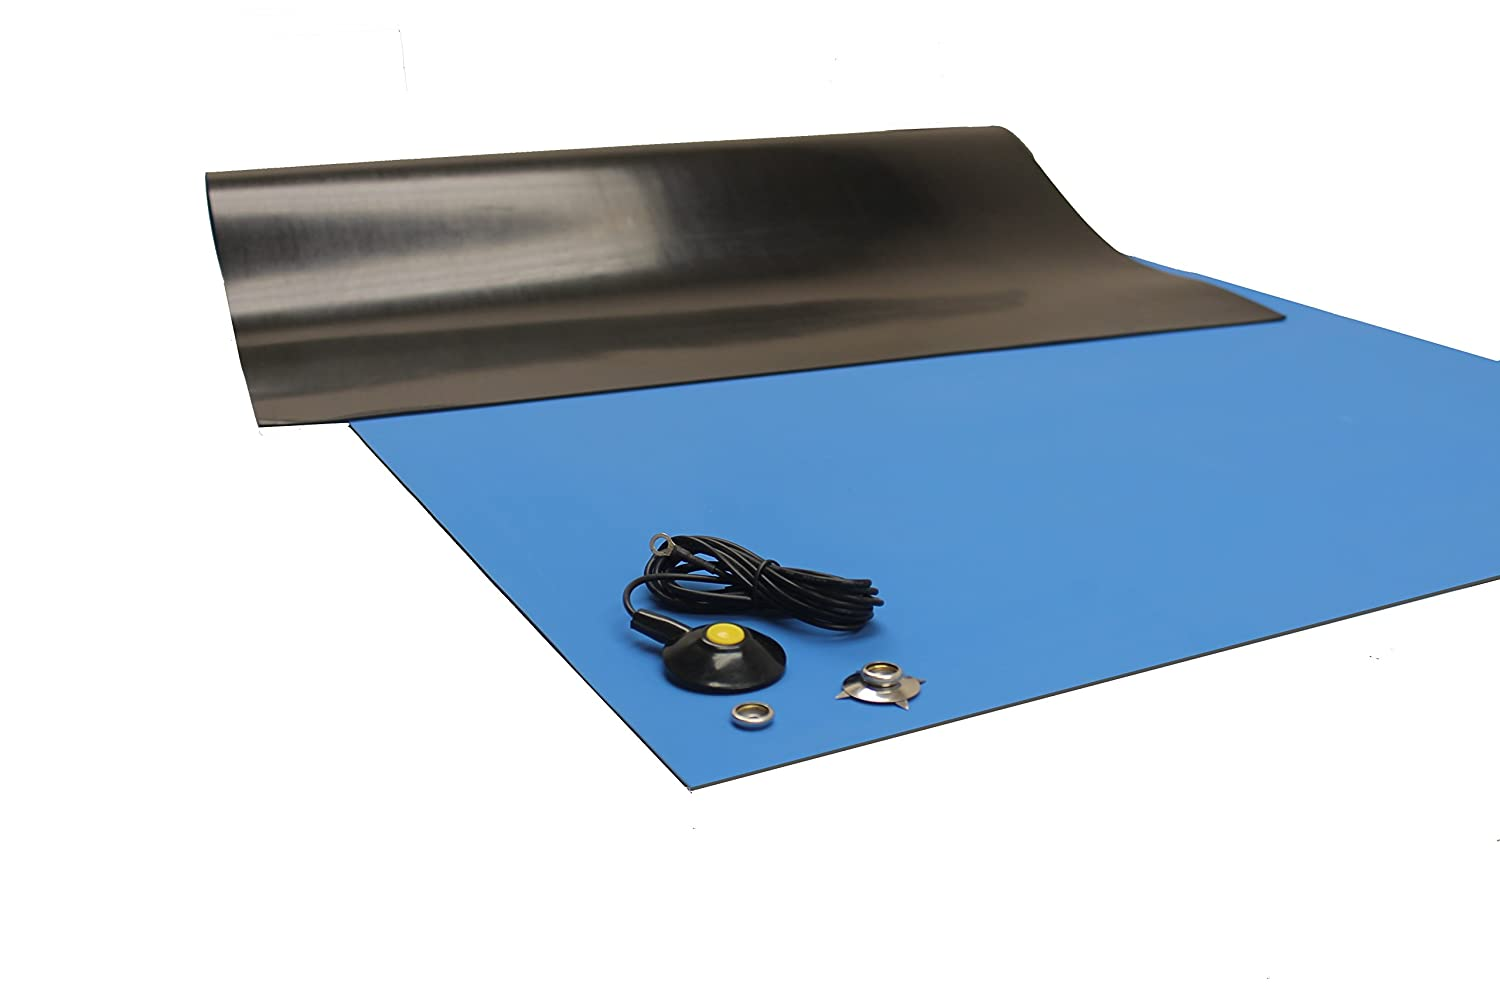 "Rubber ESD Anti-Static HIGH Temperature Soldering MAT-30"" X 48"" (2.5' x 4') - 0.08"" Thick- with Ground Cable-Blue"